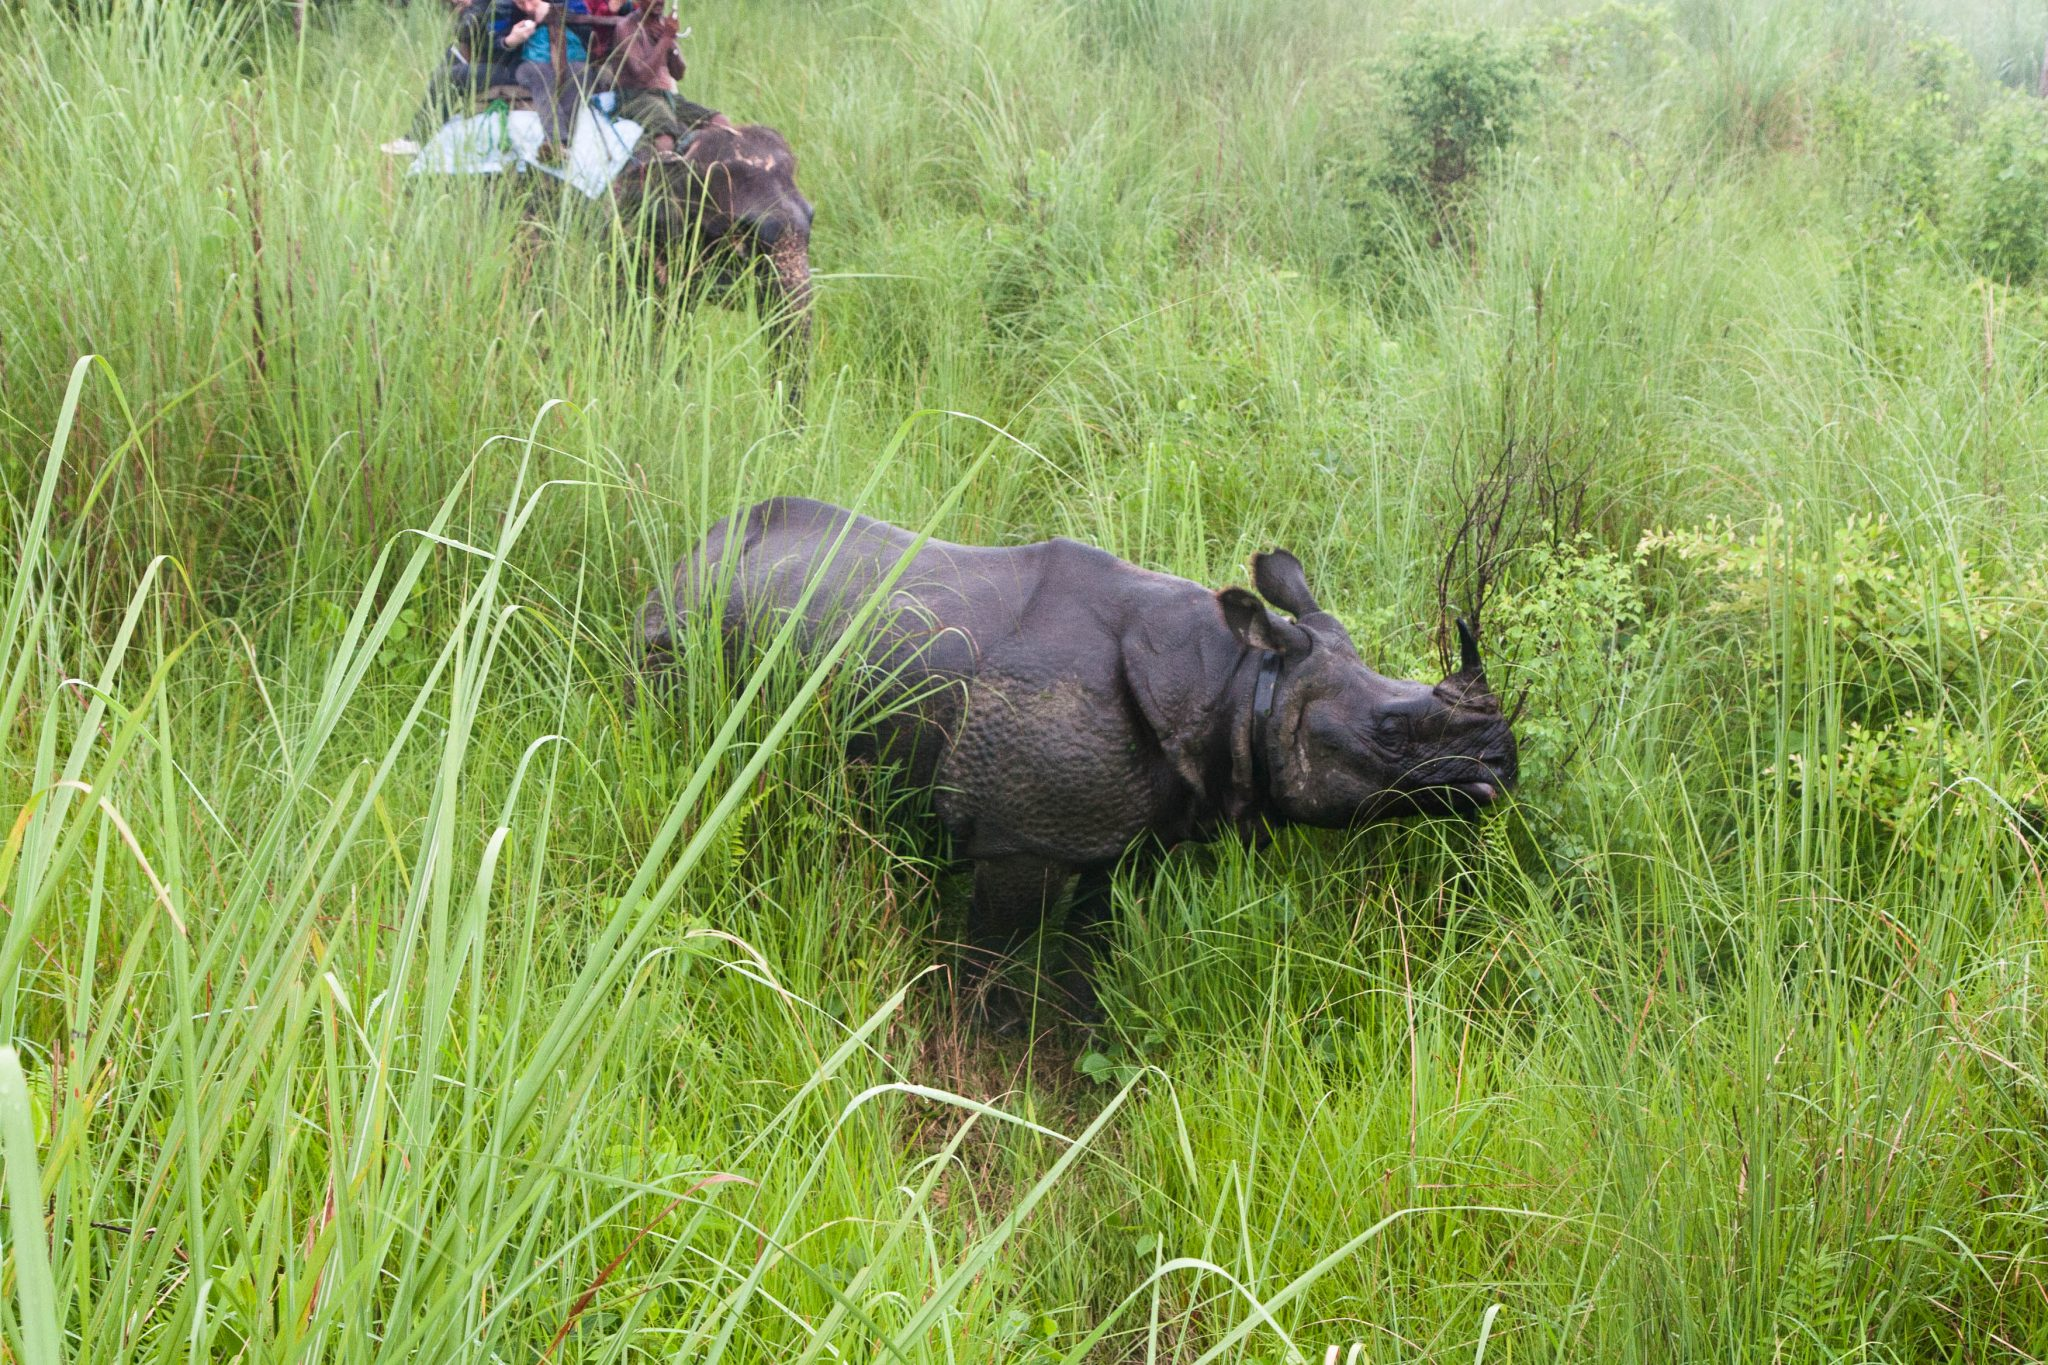 Chitwan National Park Safari -one of the must-do activities